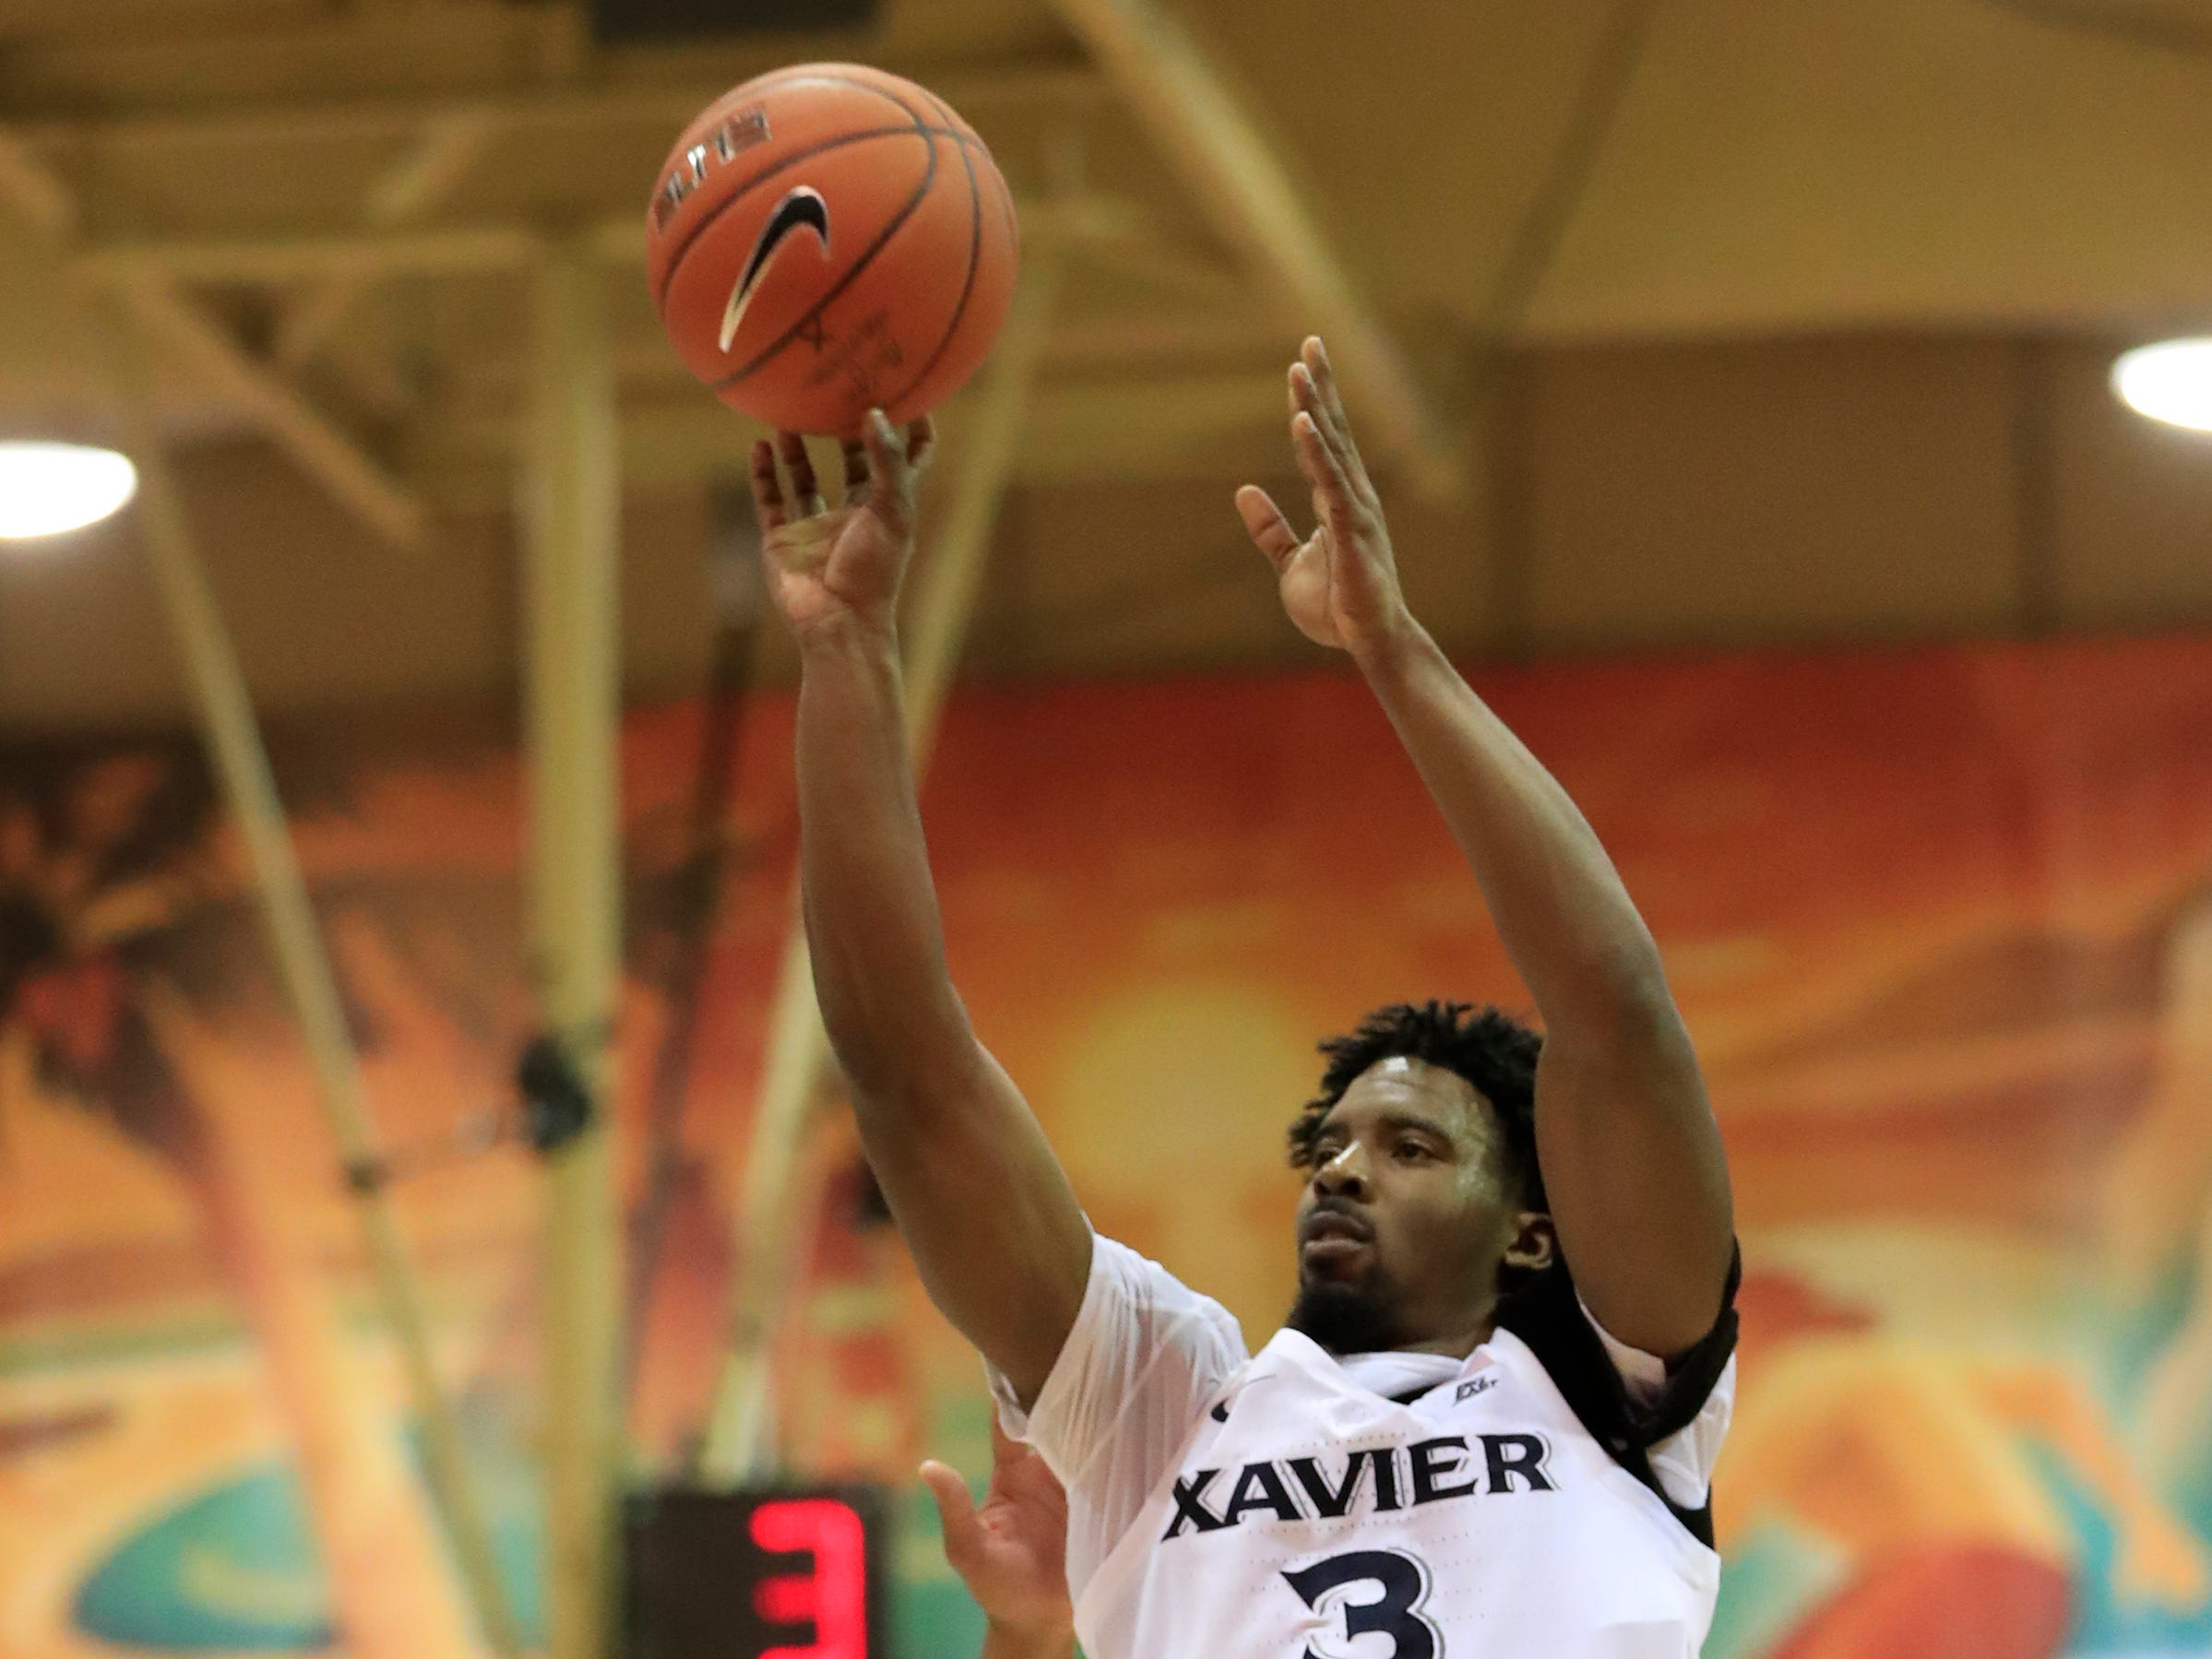 Xavier guard Quentin Goodin (3) shoots over the Auburn defense during the first half of an NCAA college basketball game at the Maui Invitational, Monday, Nov. 19, 2018, in Lahaina, Hawaii.